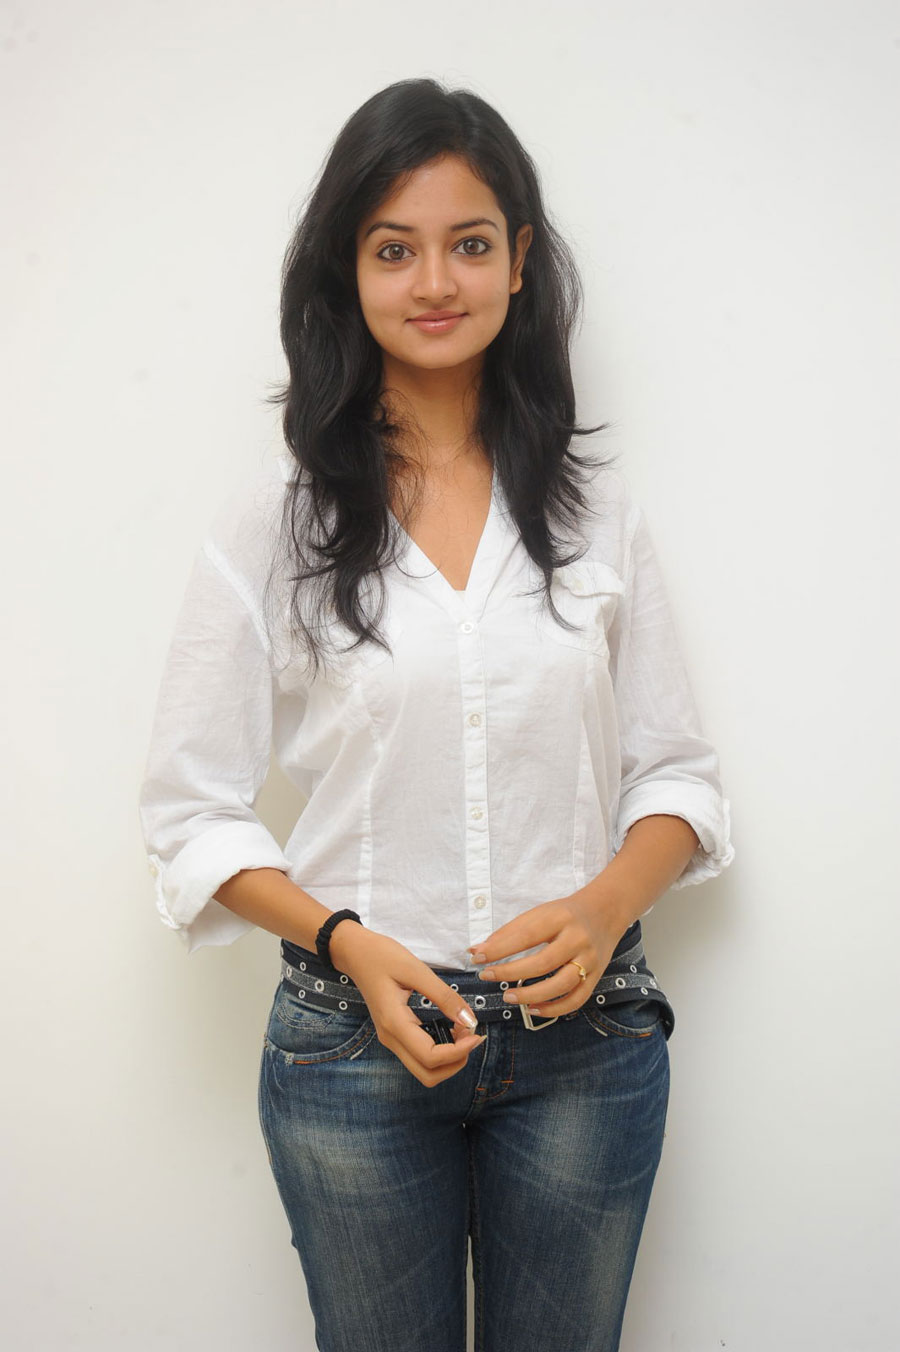 Shanvi Shoot in Adda Press Meet Photo Gallery Sanvi-18